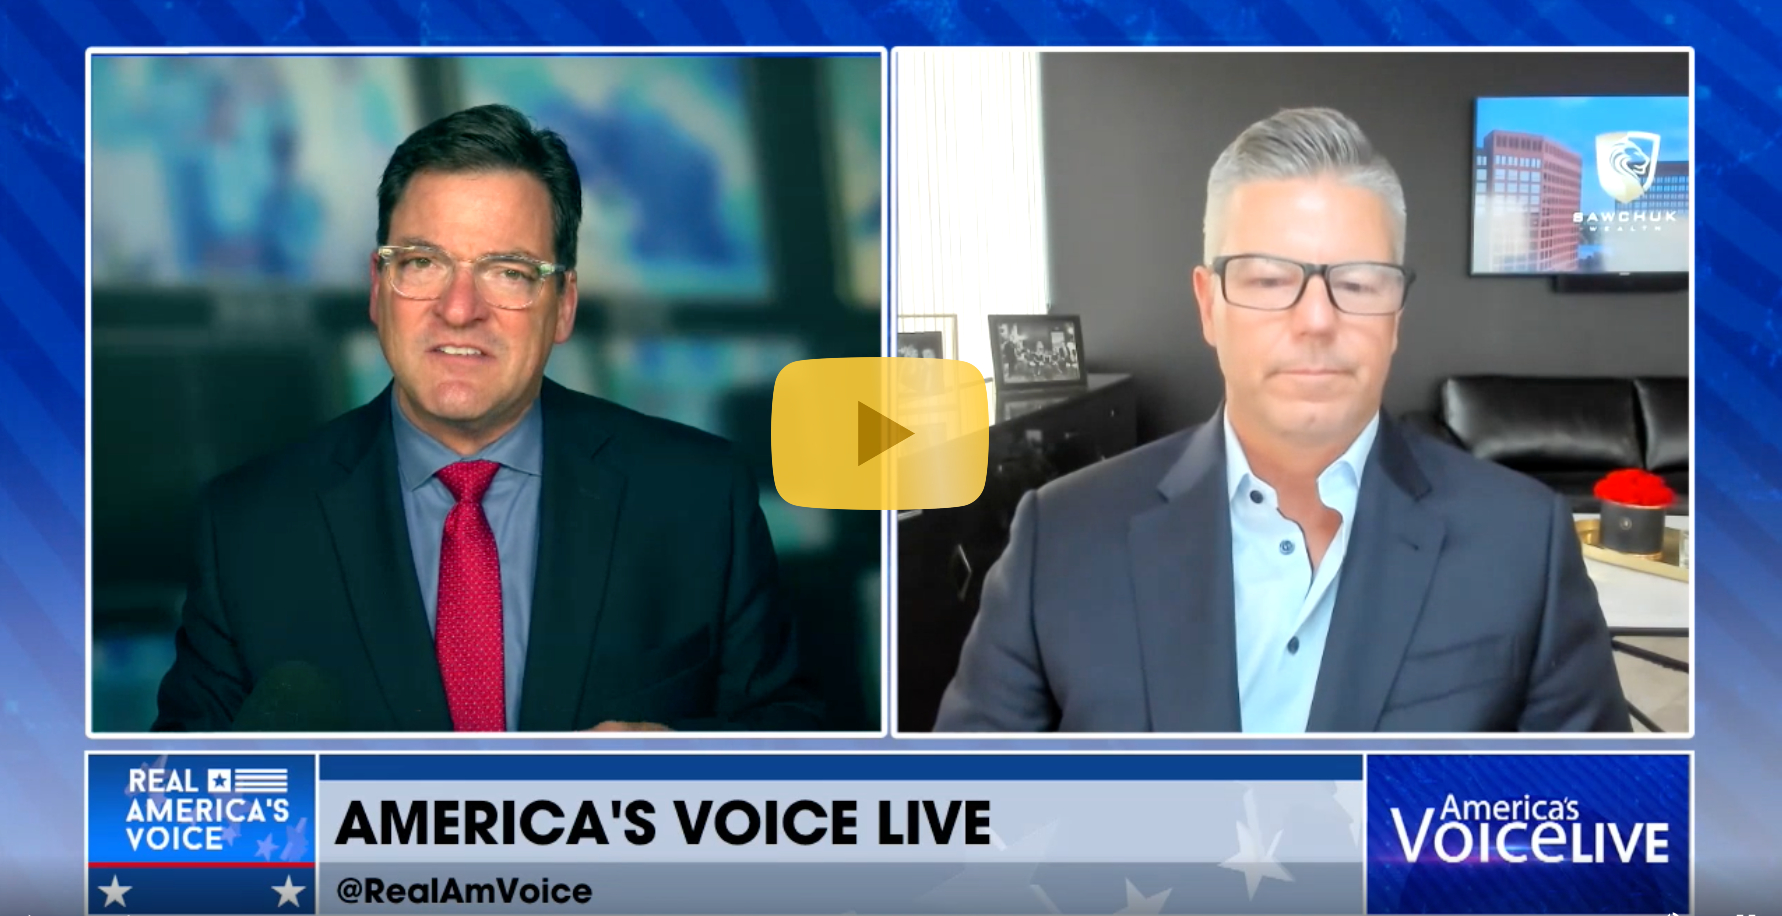 A Michigan wealth advisor discusses unemployment and jobs on America's Voice Live